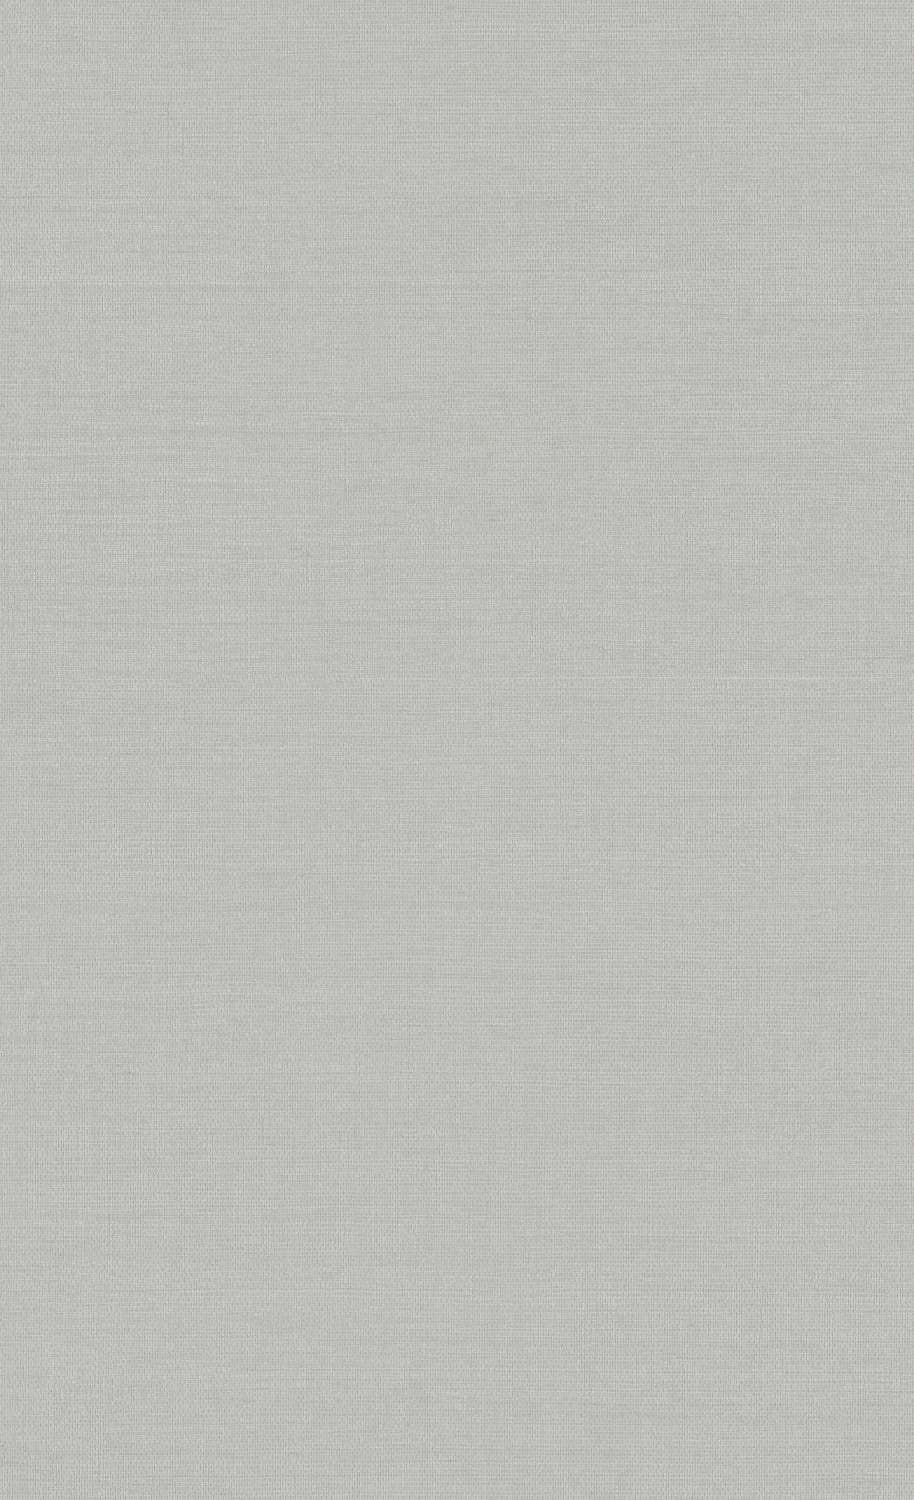 Light Grey Contract Wallpaper C7258. Contract wall covering. Commercial wallpaper. Office wallpaper. Textured wallpaper. Vinyl Wallpaper.